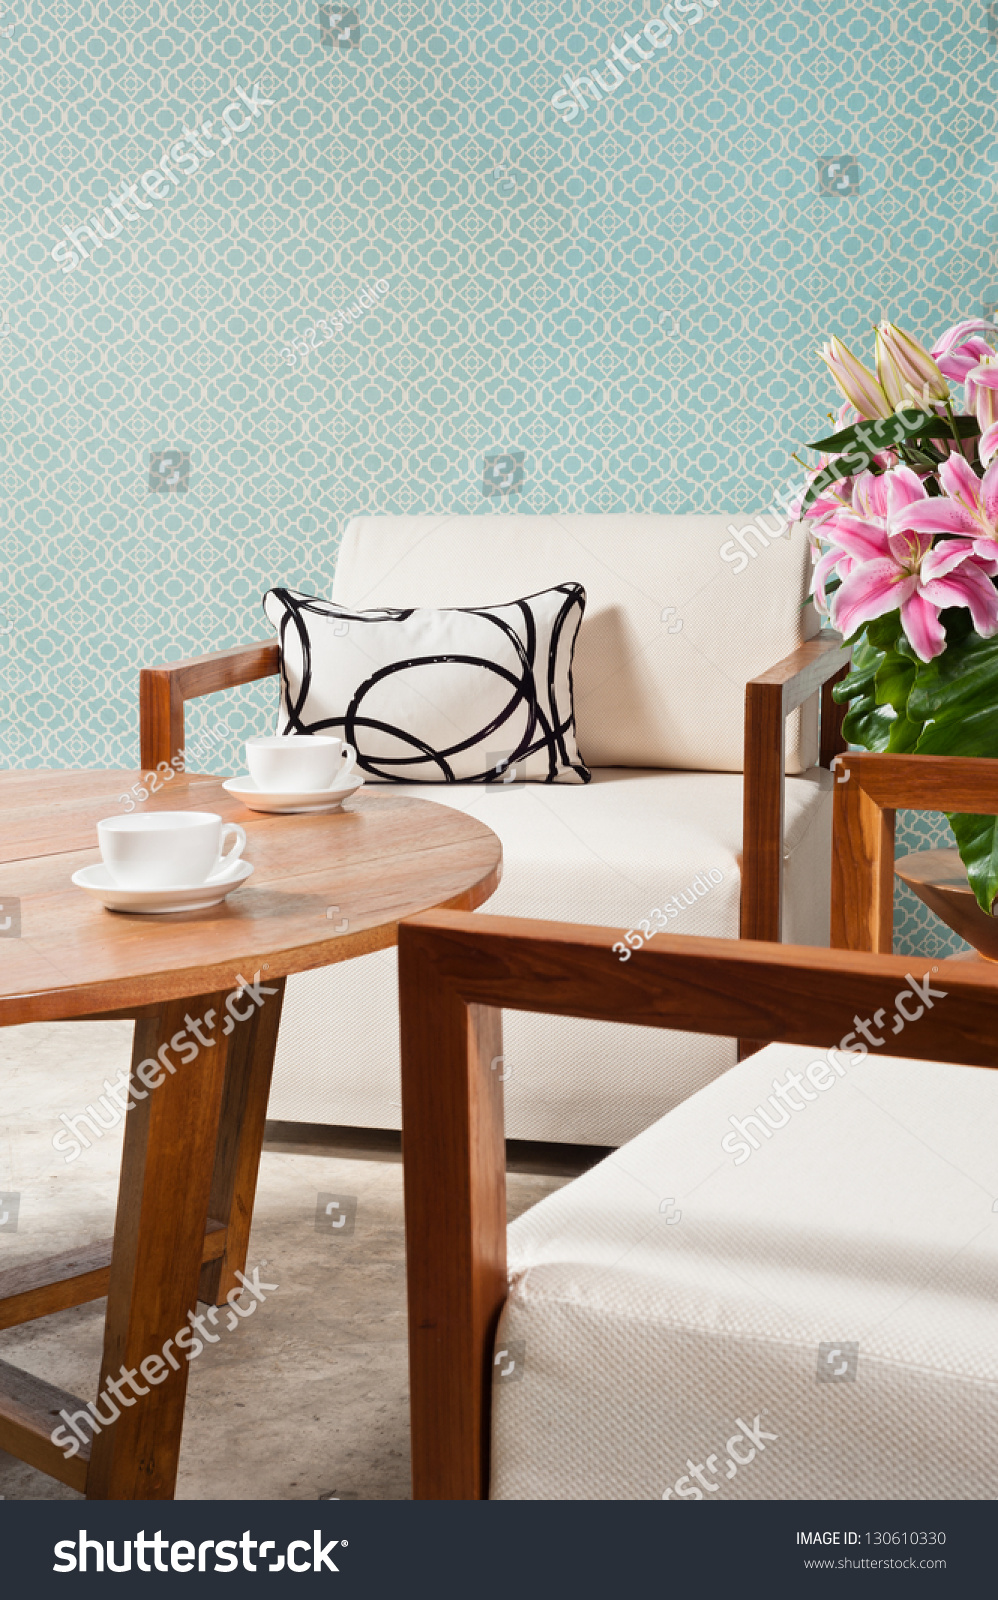 Brown White Furniture Living Room Turquoise Stock Photo 130610330 Shutterstock